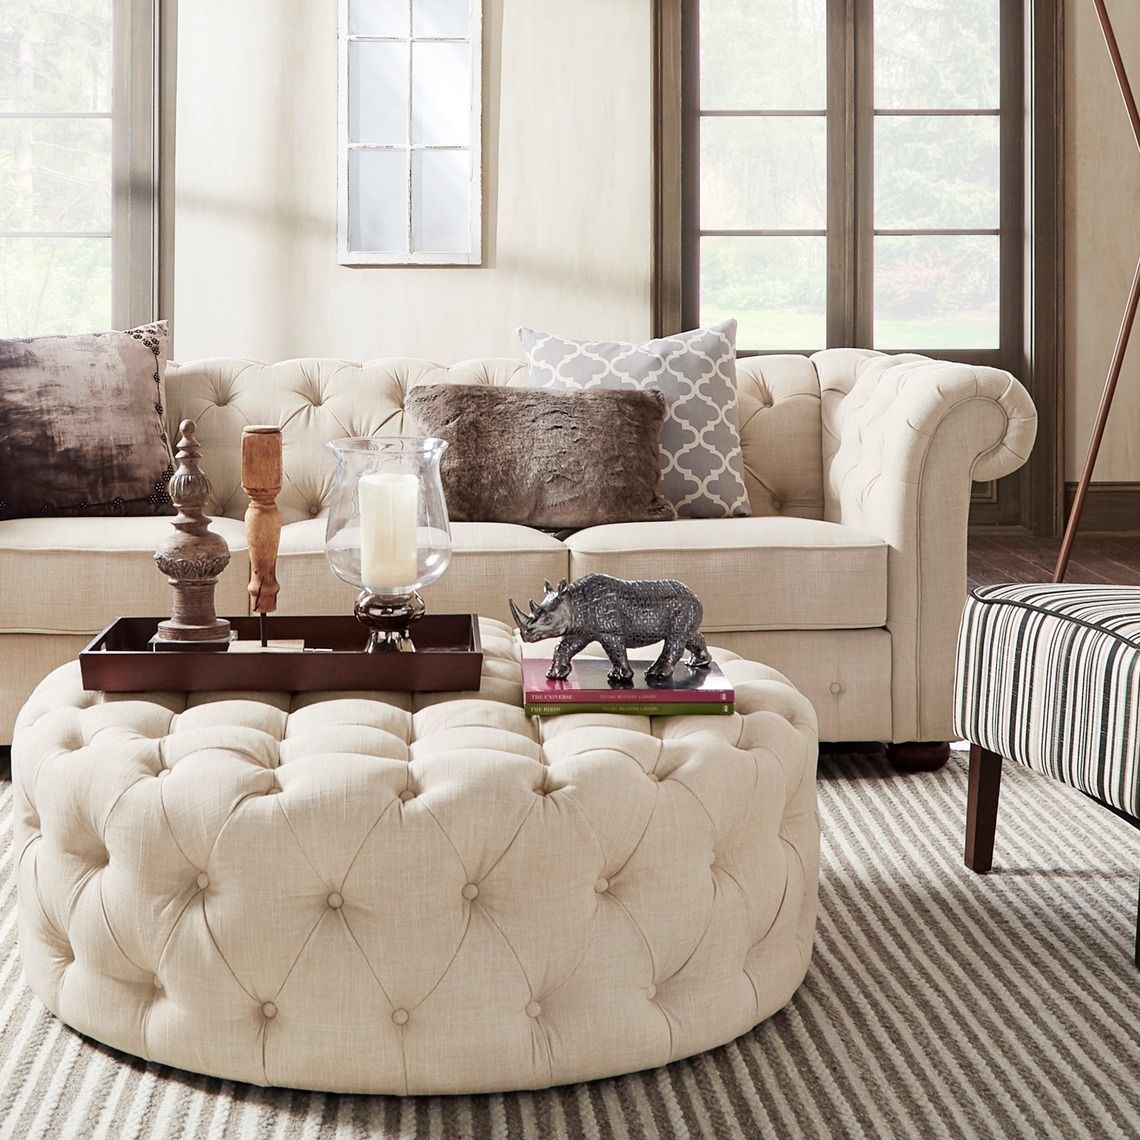 Everett Tufted Leather Settee In 2019: Knightsbridge Beige Fabric Button Tufted Chesterfield Sofa